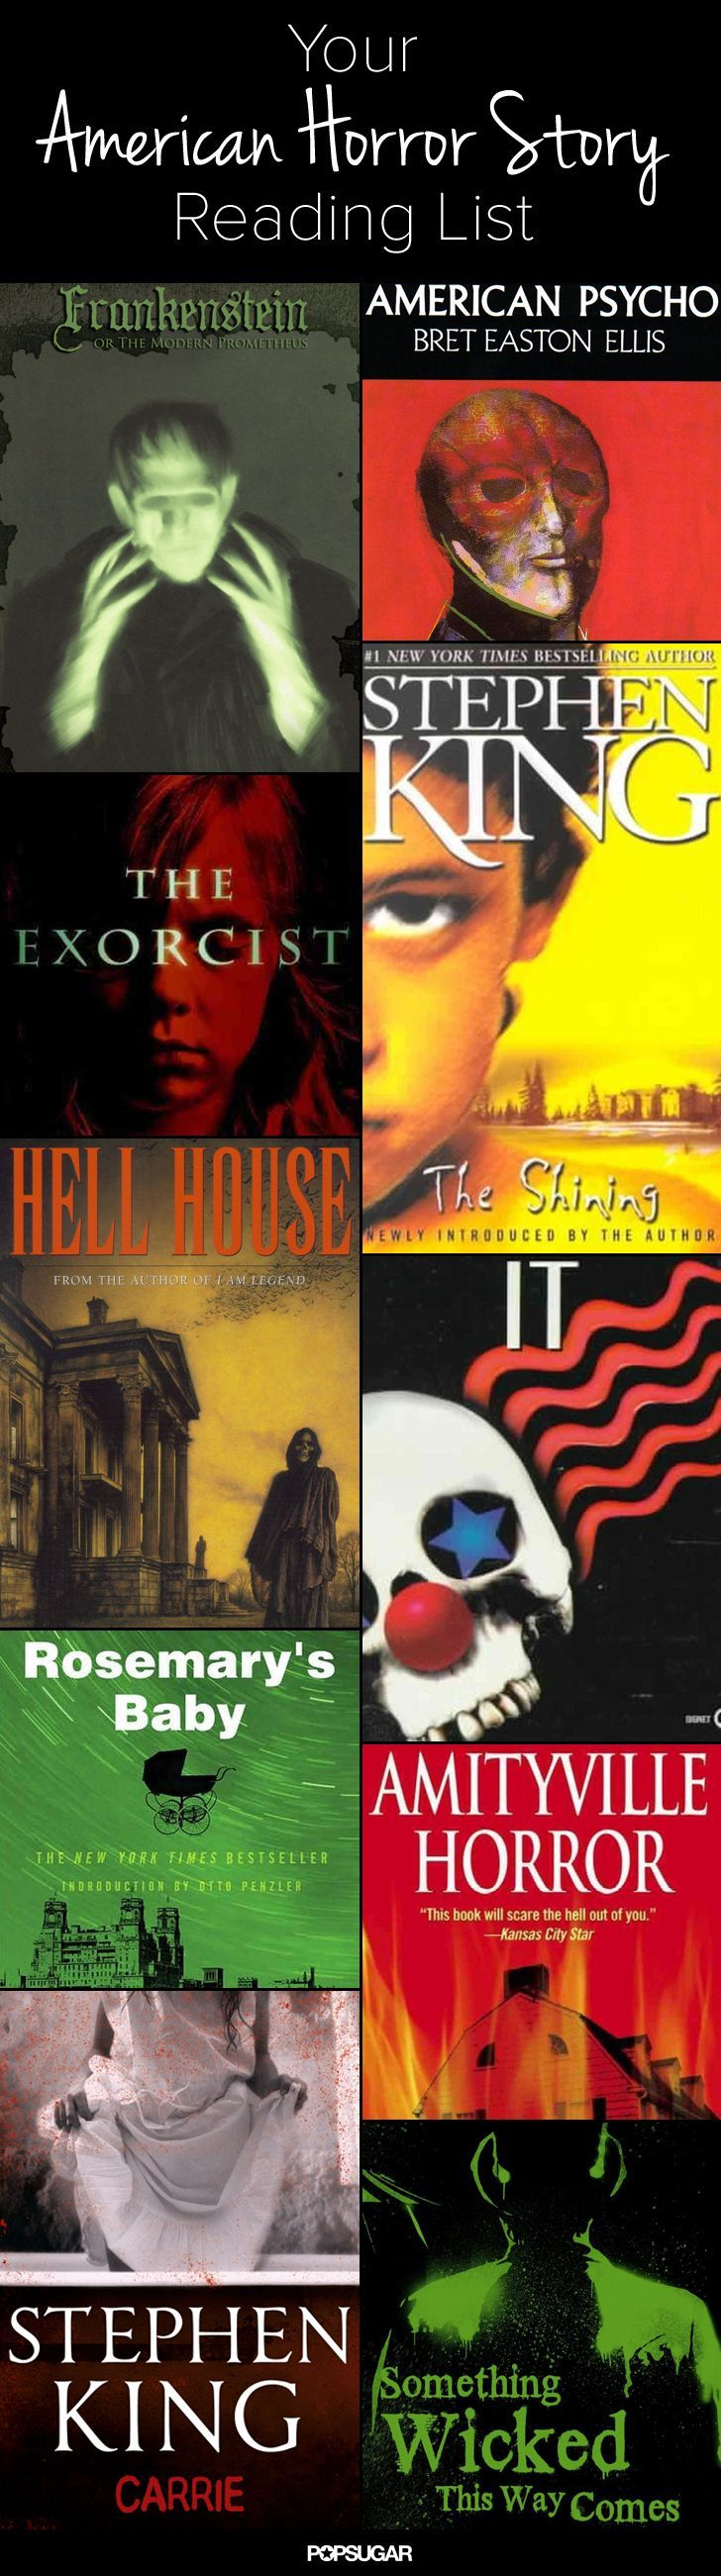 Who's reading a scary book from our reading list?